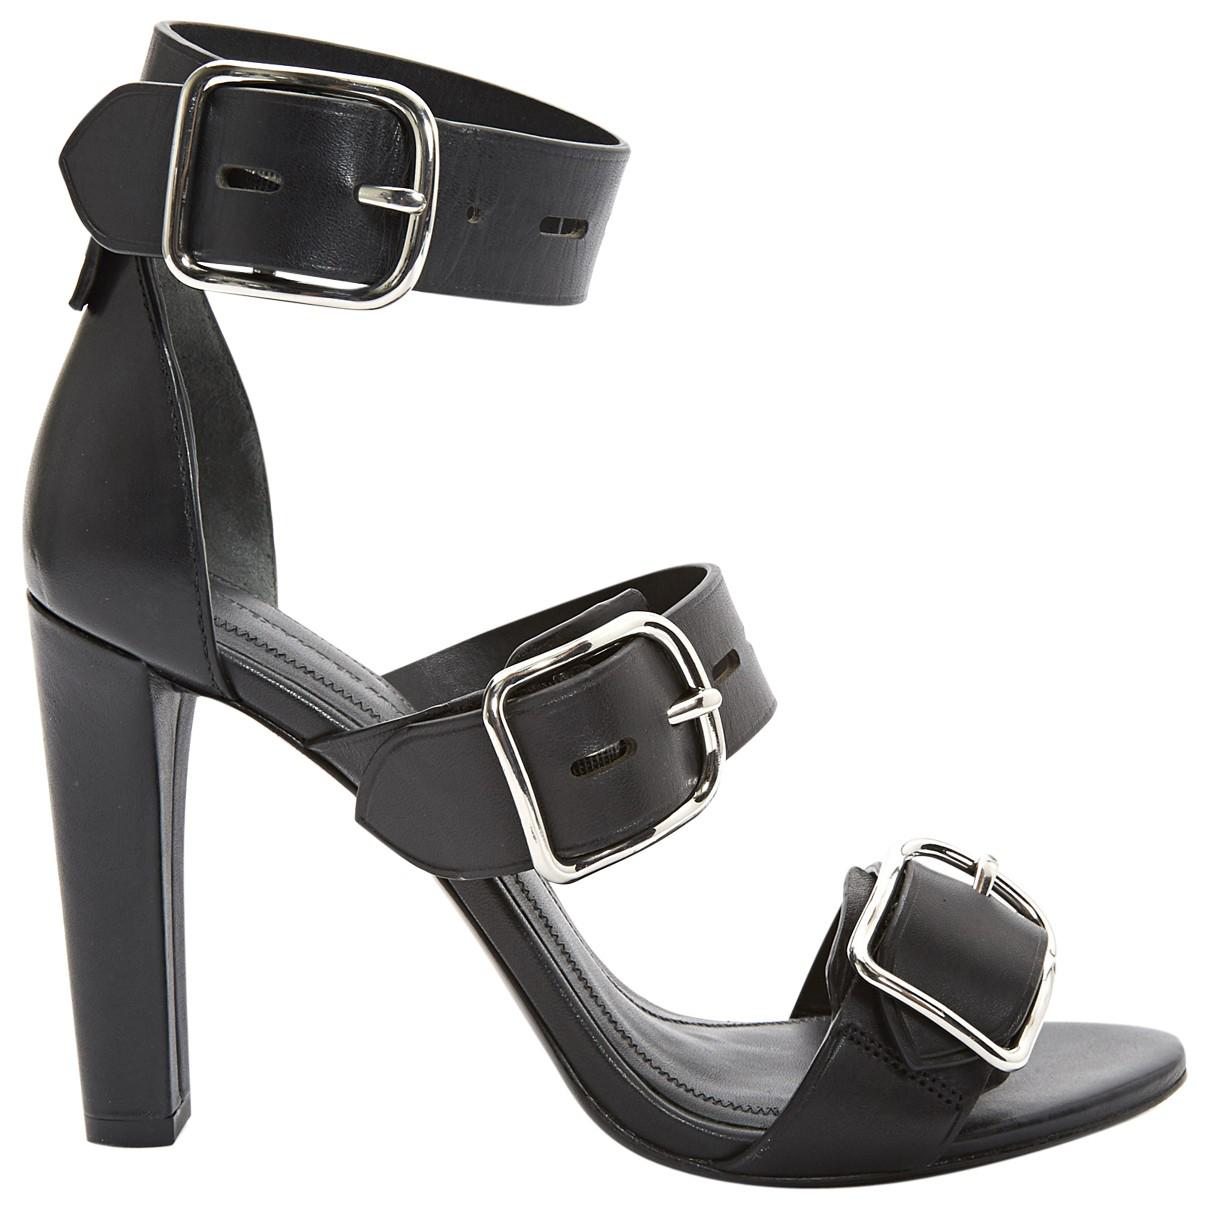 Pre-owned - Leather sandal Alexander Wang 4aJnS3py